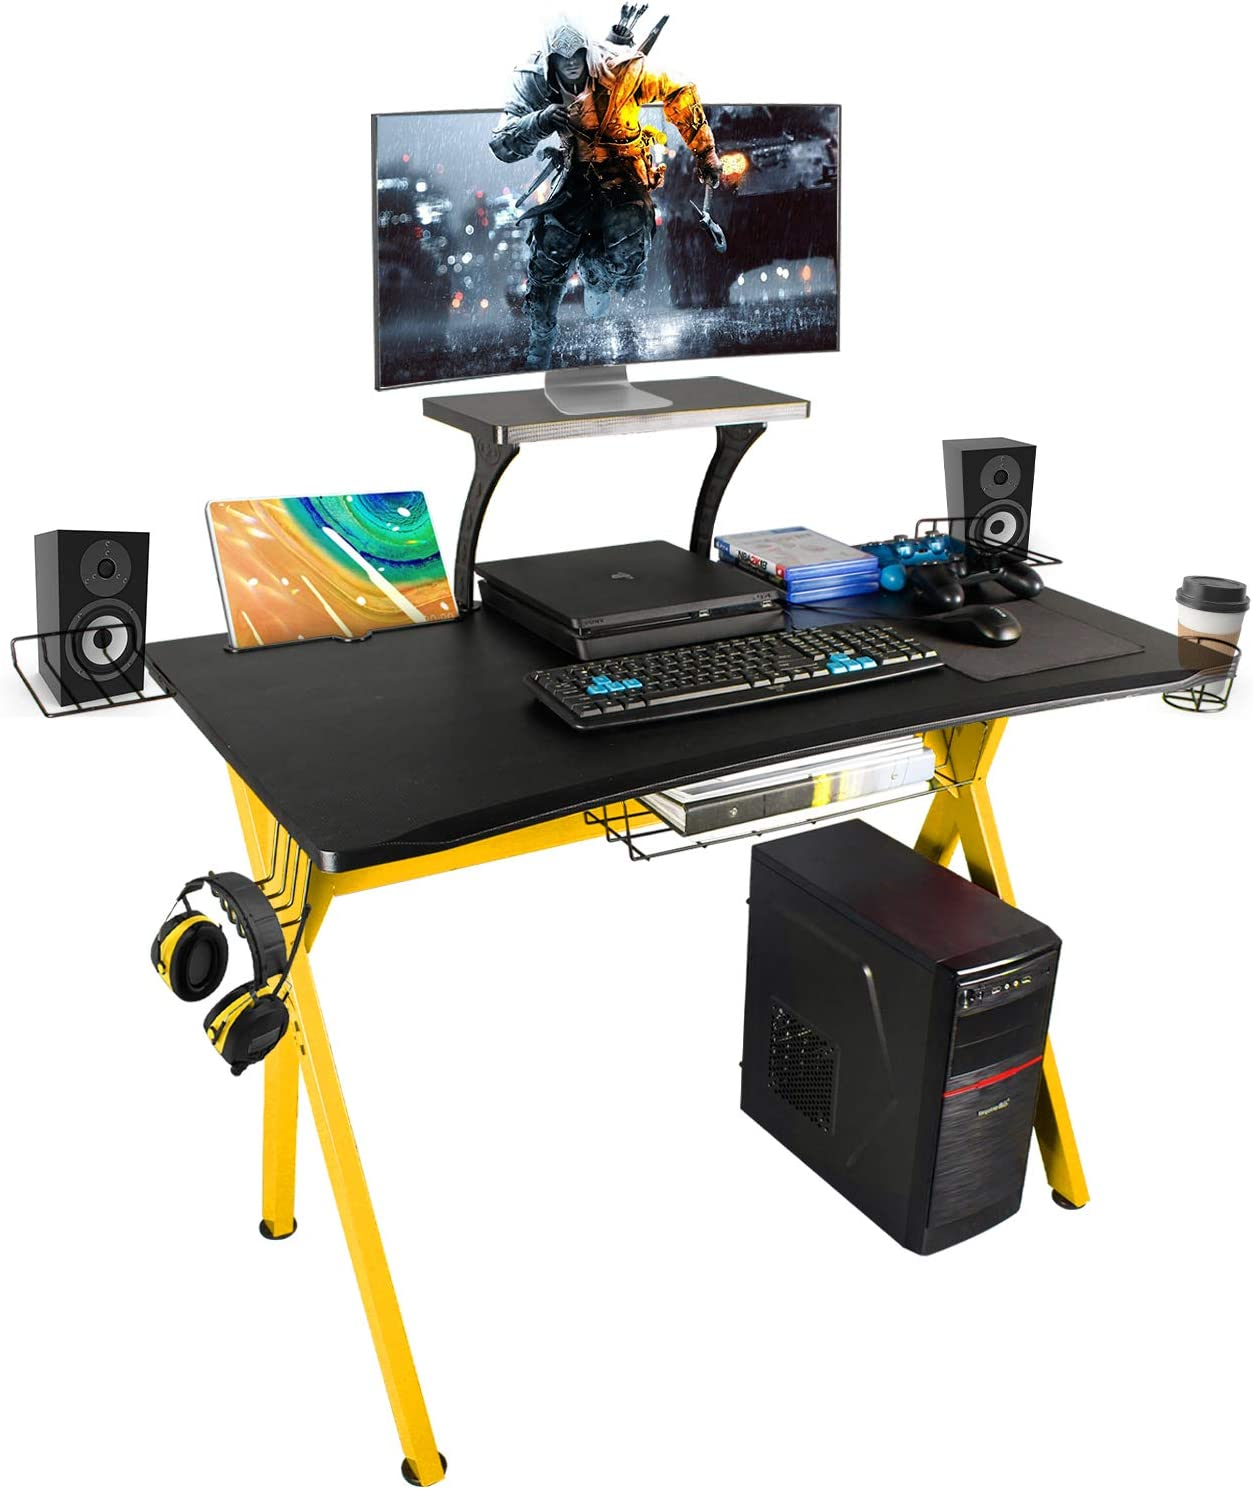 "LAZZO X Type Gaming Desk 41"" Game Table Home Computer Desk with Display Support Plate, Cup Holder and Headphone Hook,Gamer Workstation, Curved Front Desktop,Yellow & Black Design(41"" Wx23.5 D)"